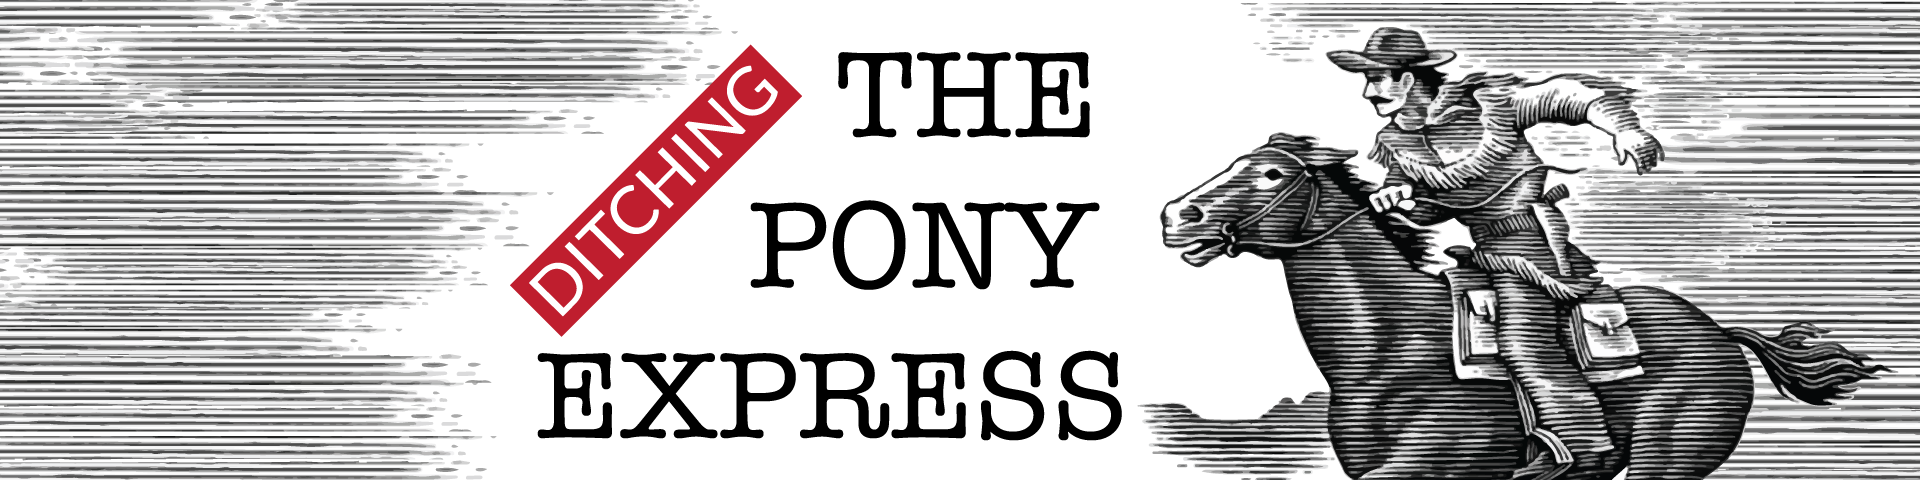 ditching-pony-express-blog-banner.png